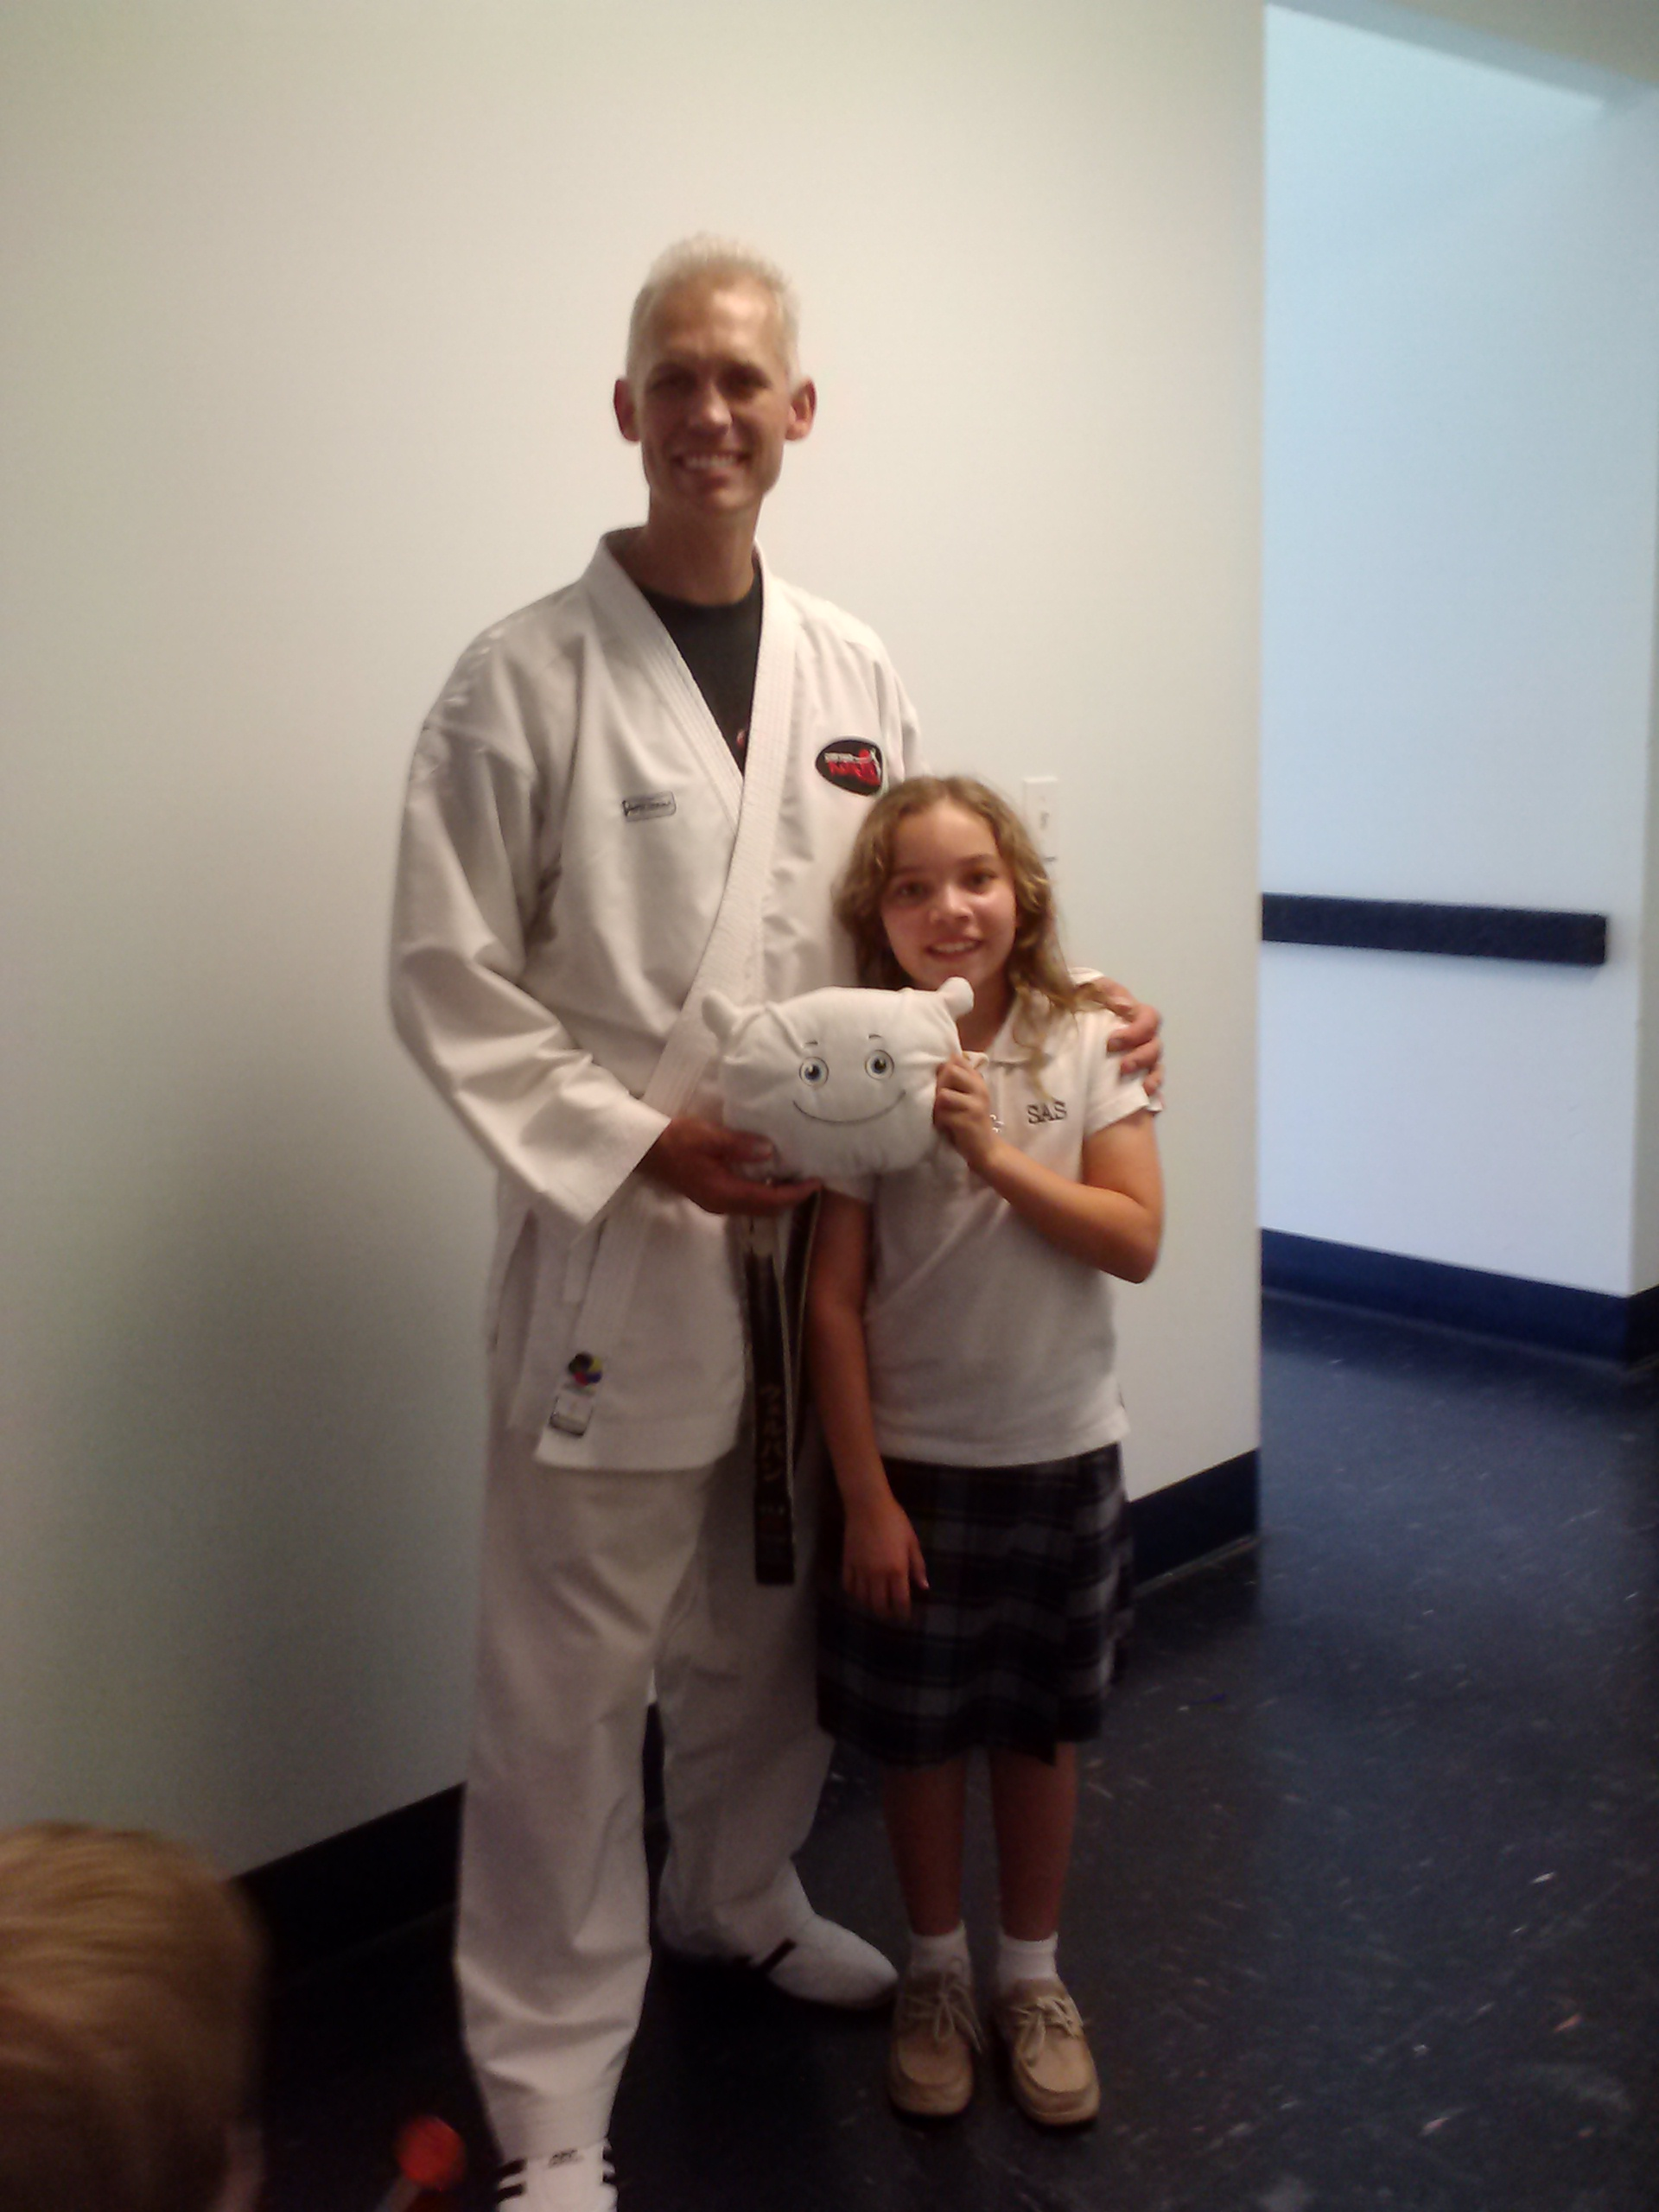 McStuffy and his big sister had their first karate class today!